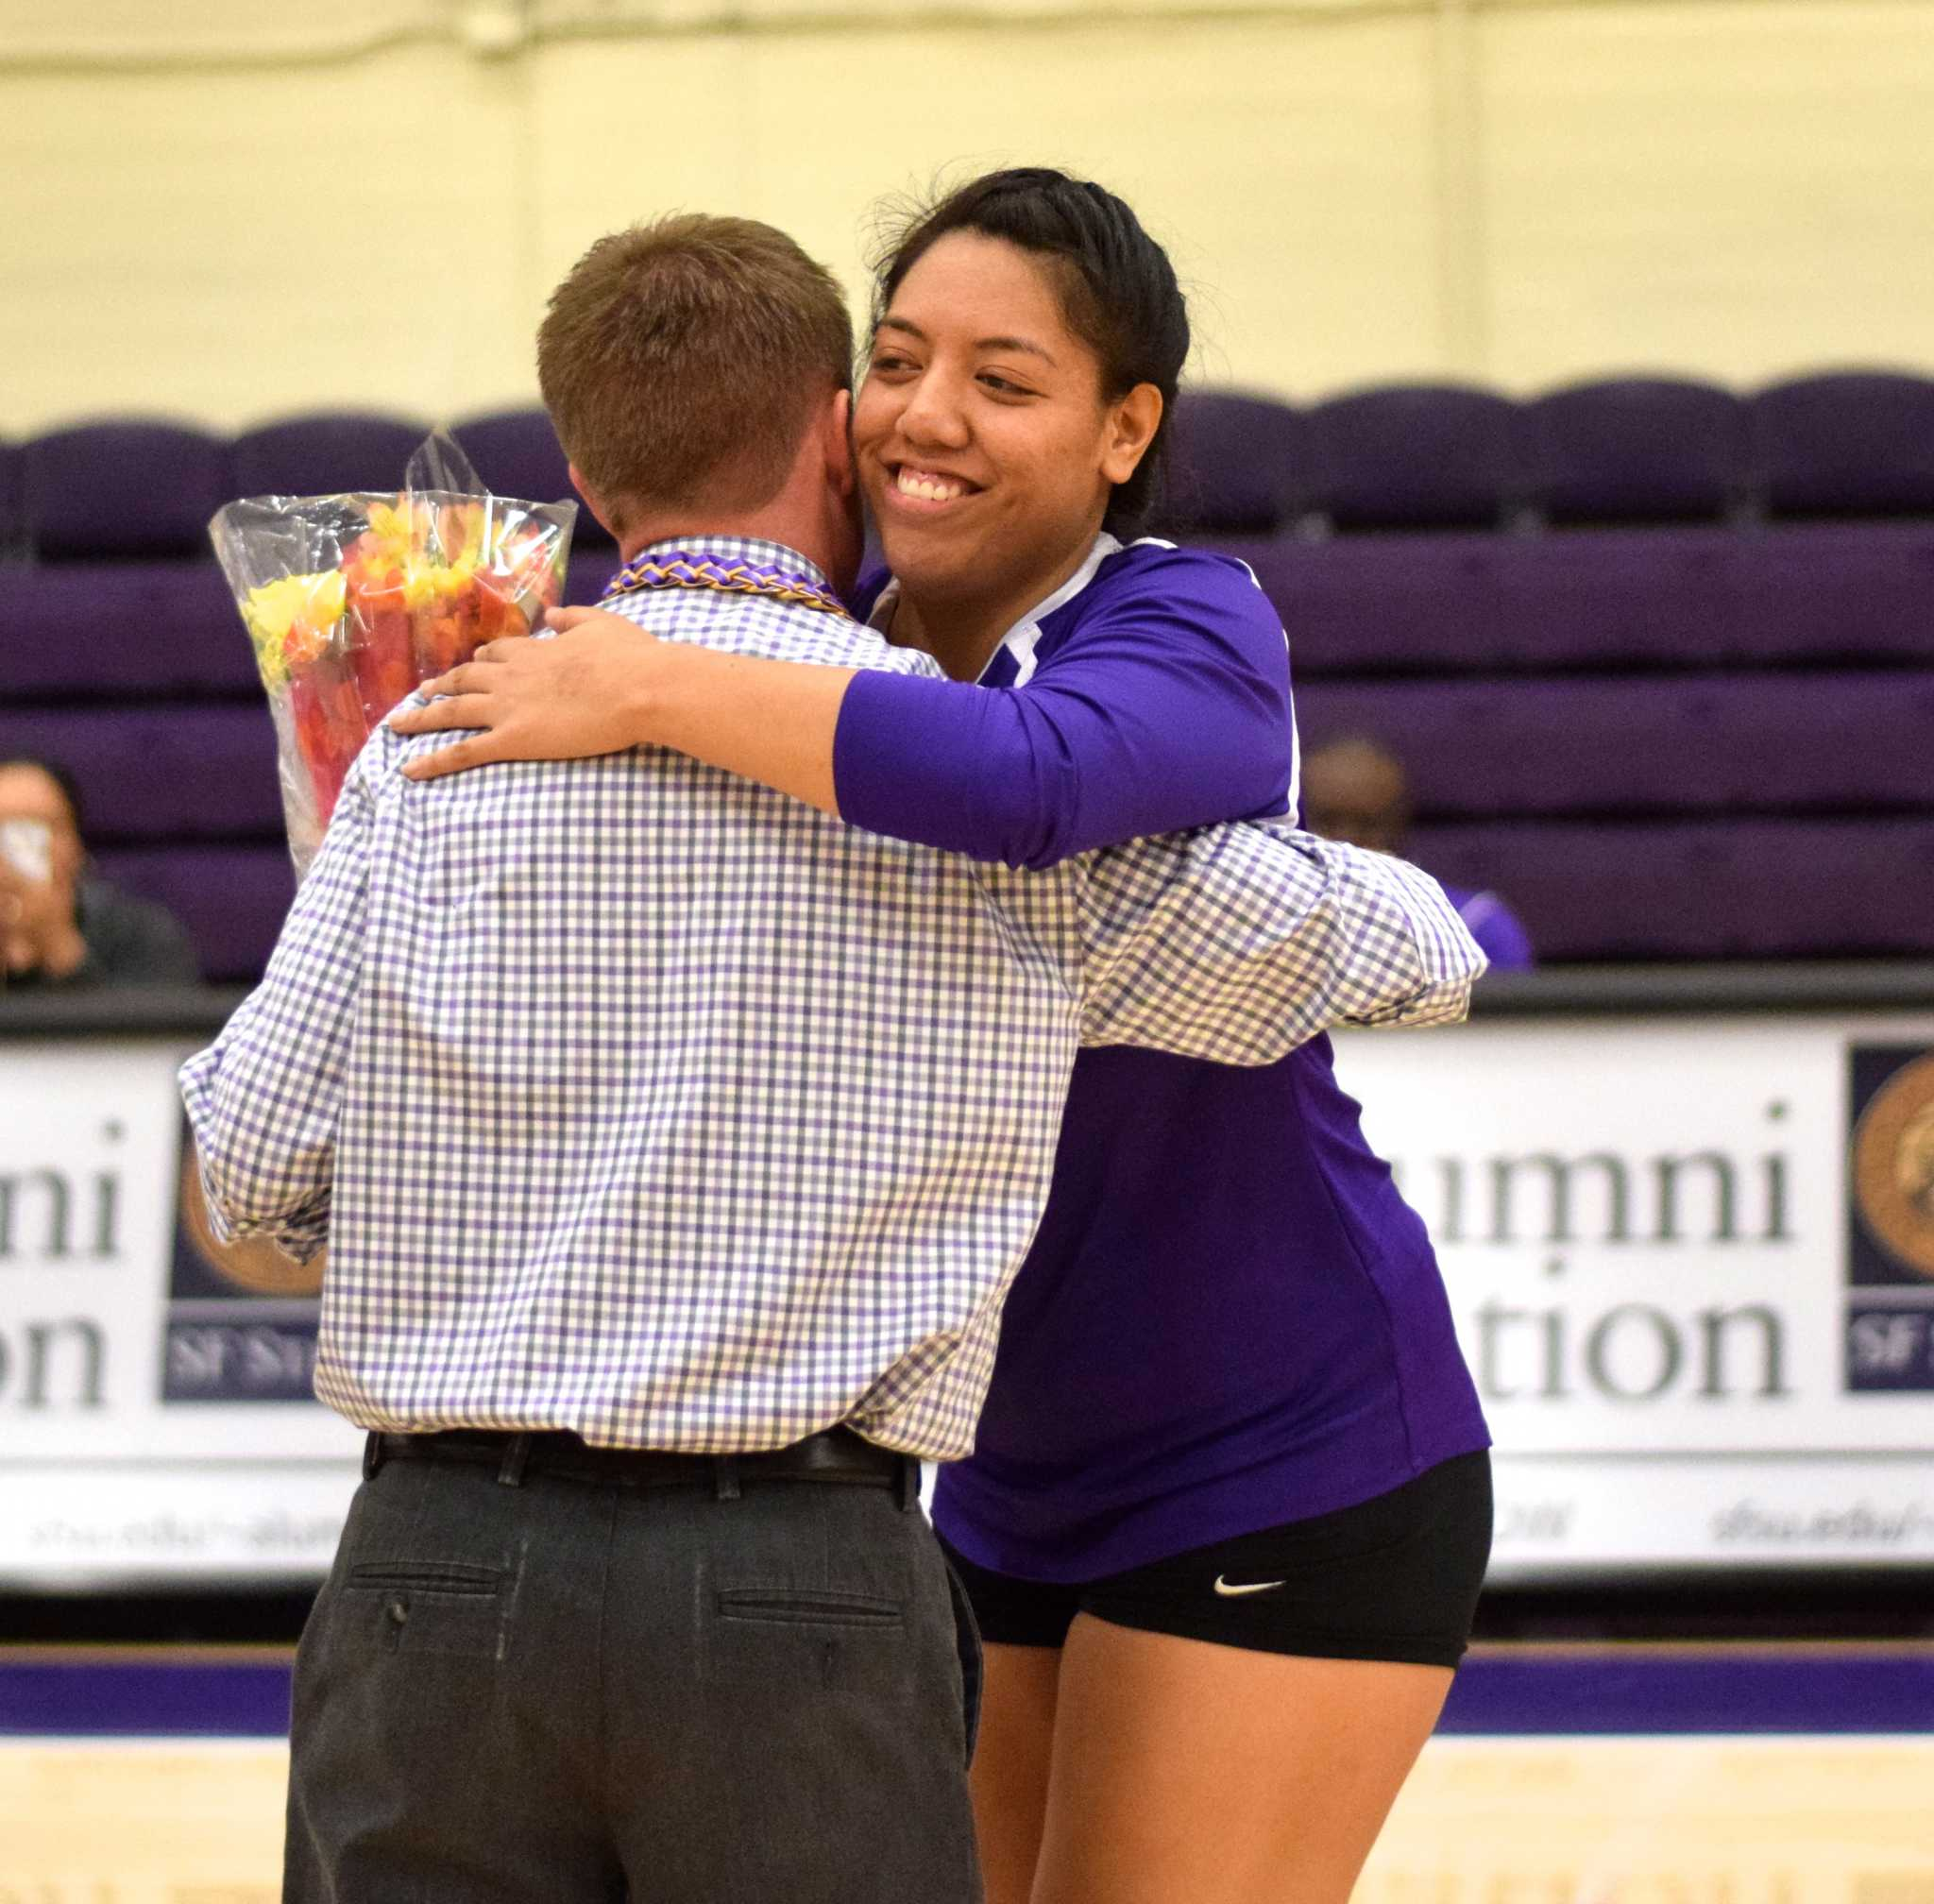 SF State Gators' senior setter Malia Muin (14) hugs head coach Matt Hoffman during the Senior Day celebrations before their game against Humboldt State University at the Swamp on Friday, Nov. 4, 2016. (Eric Chan/Xpress)